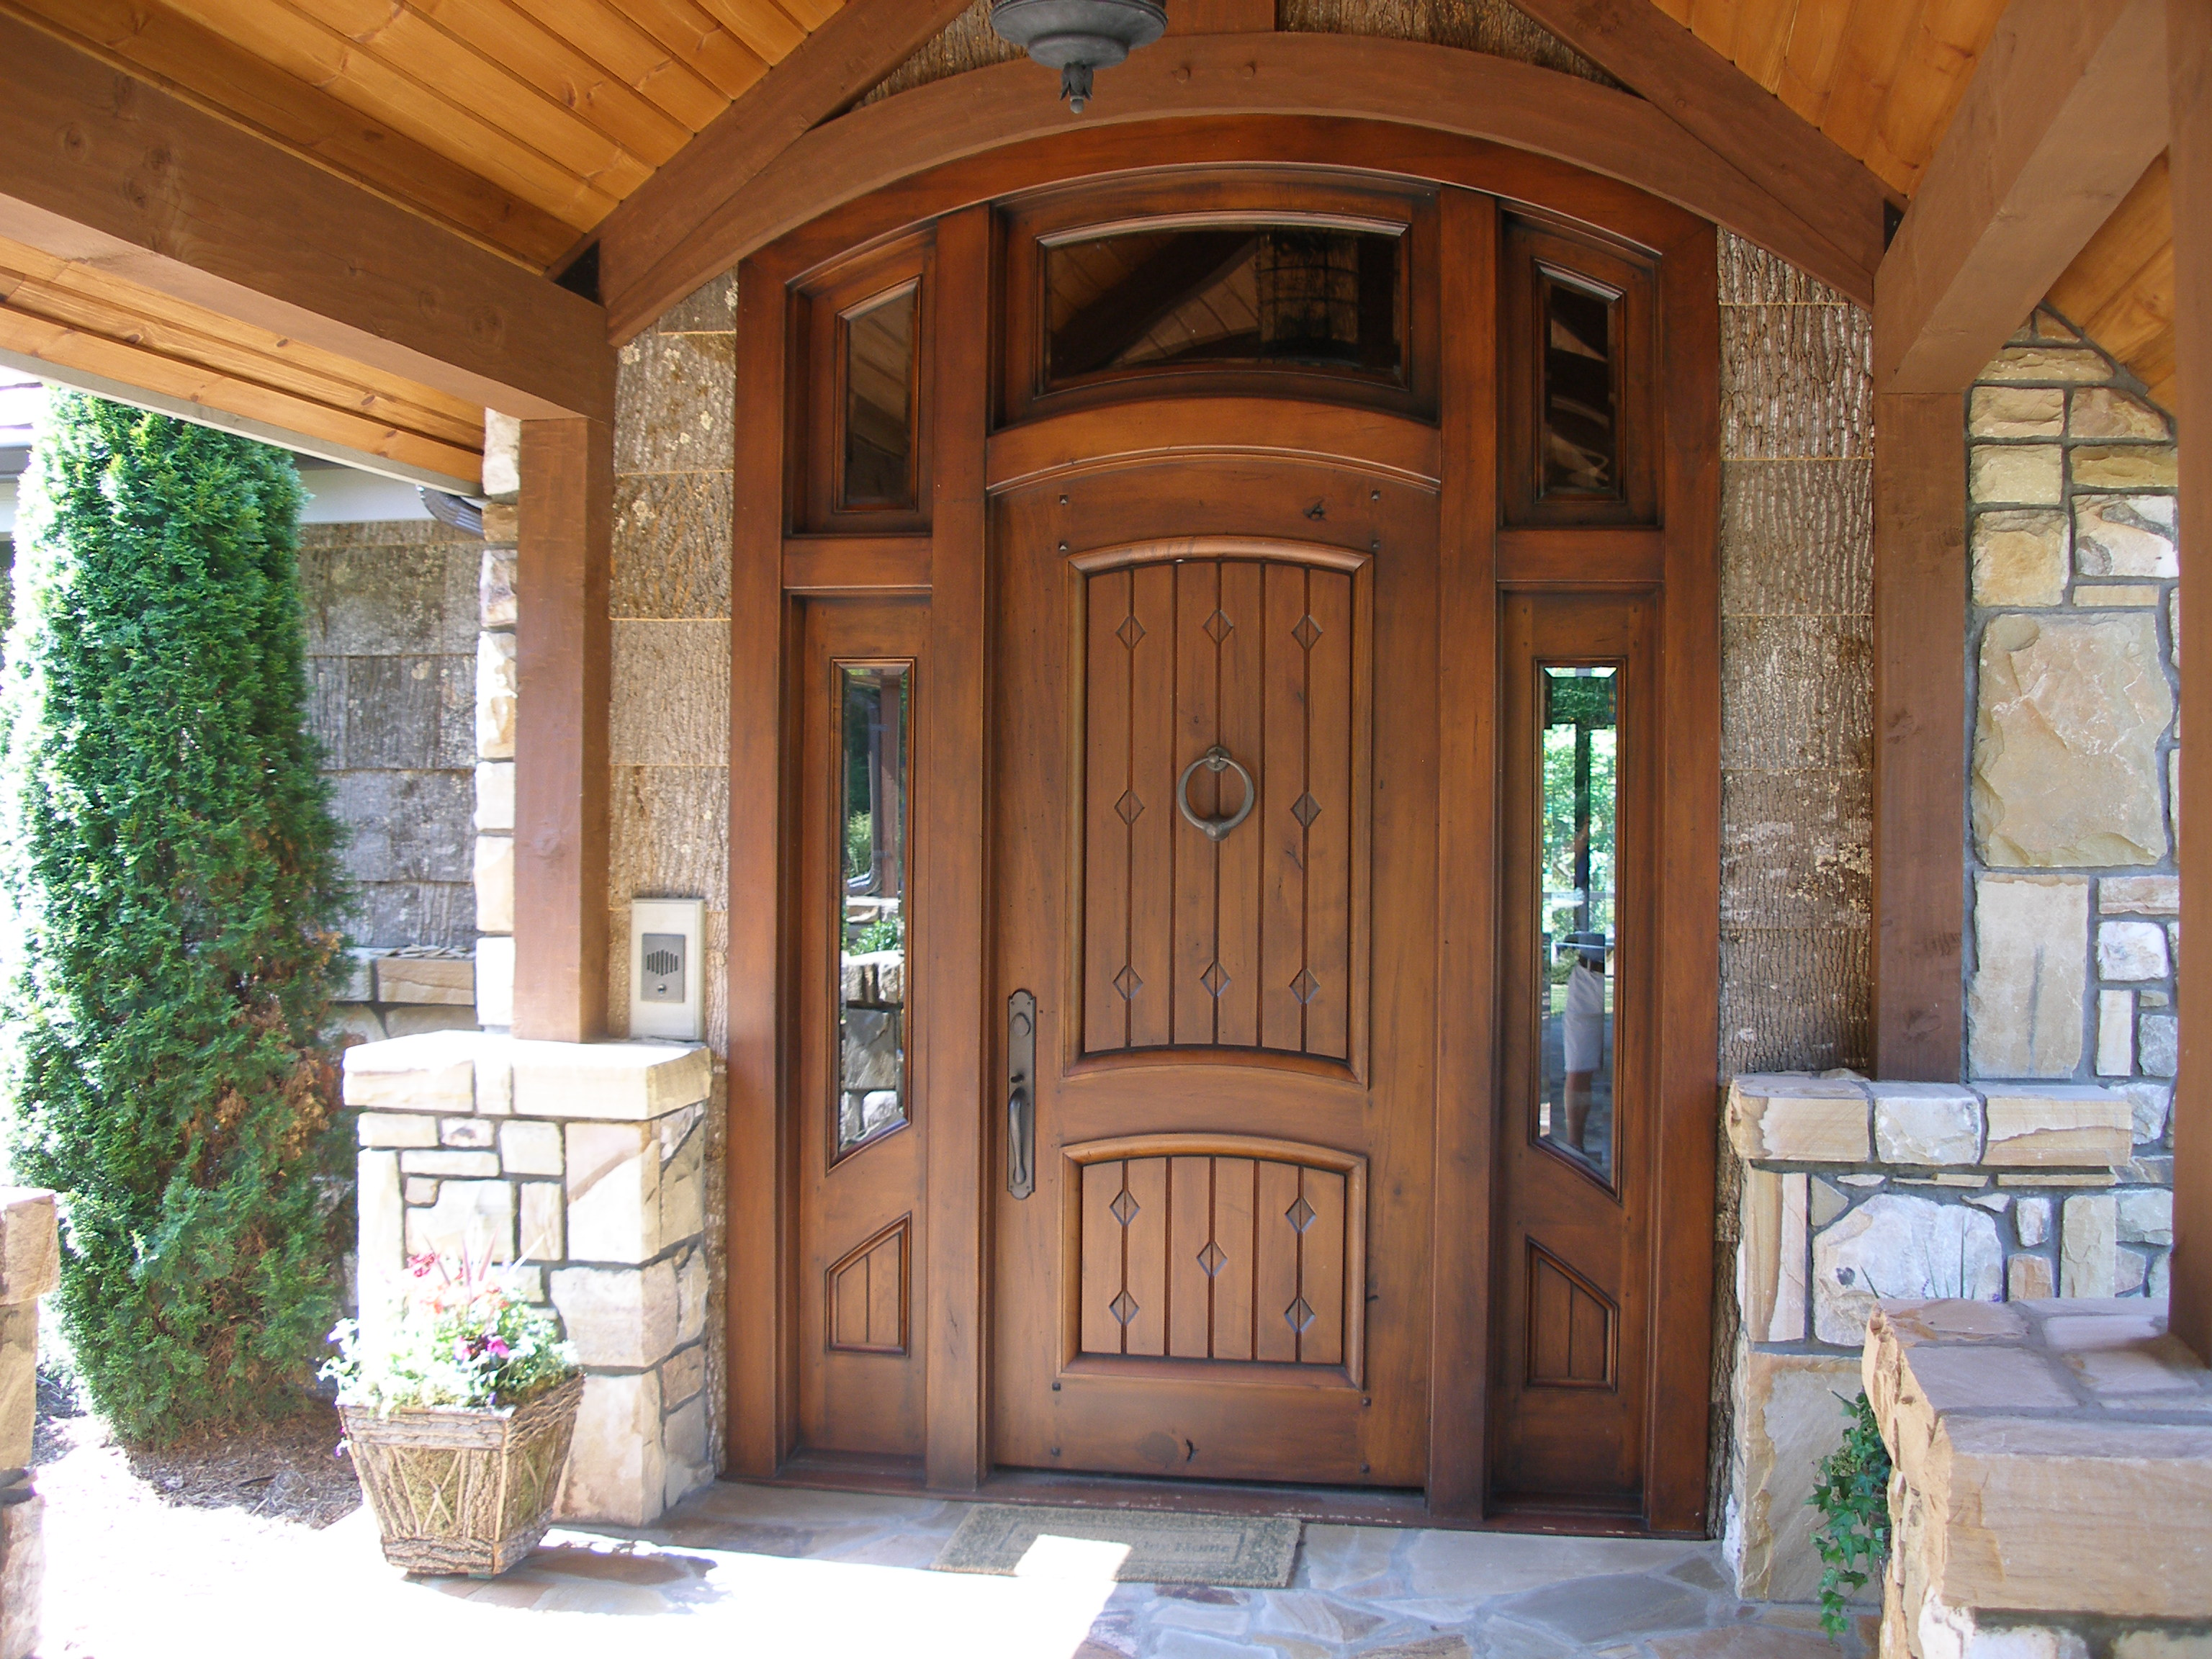 wooden pella windows and door matched with tan ceramics wall plus chandelier for exterior ideas